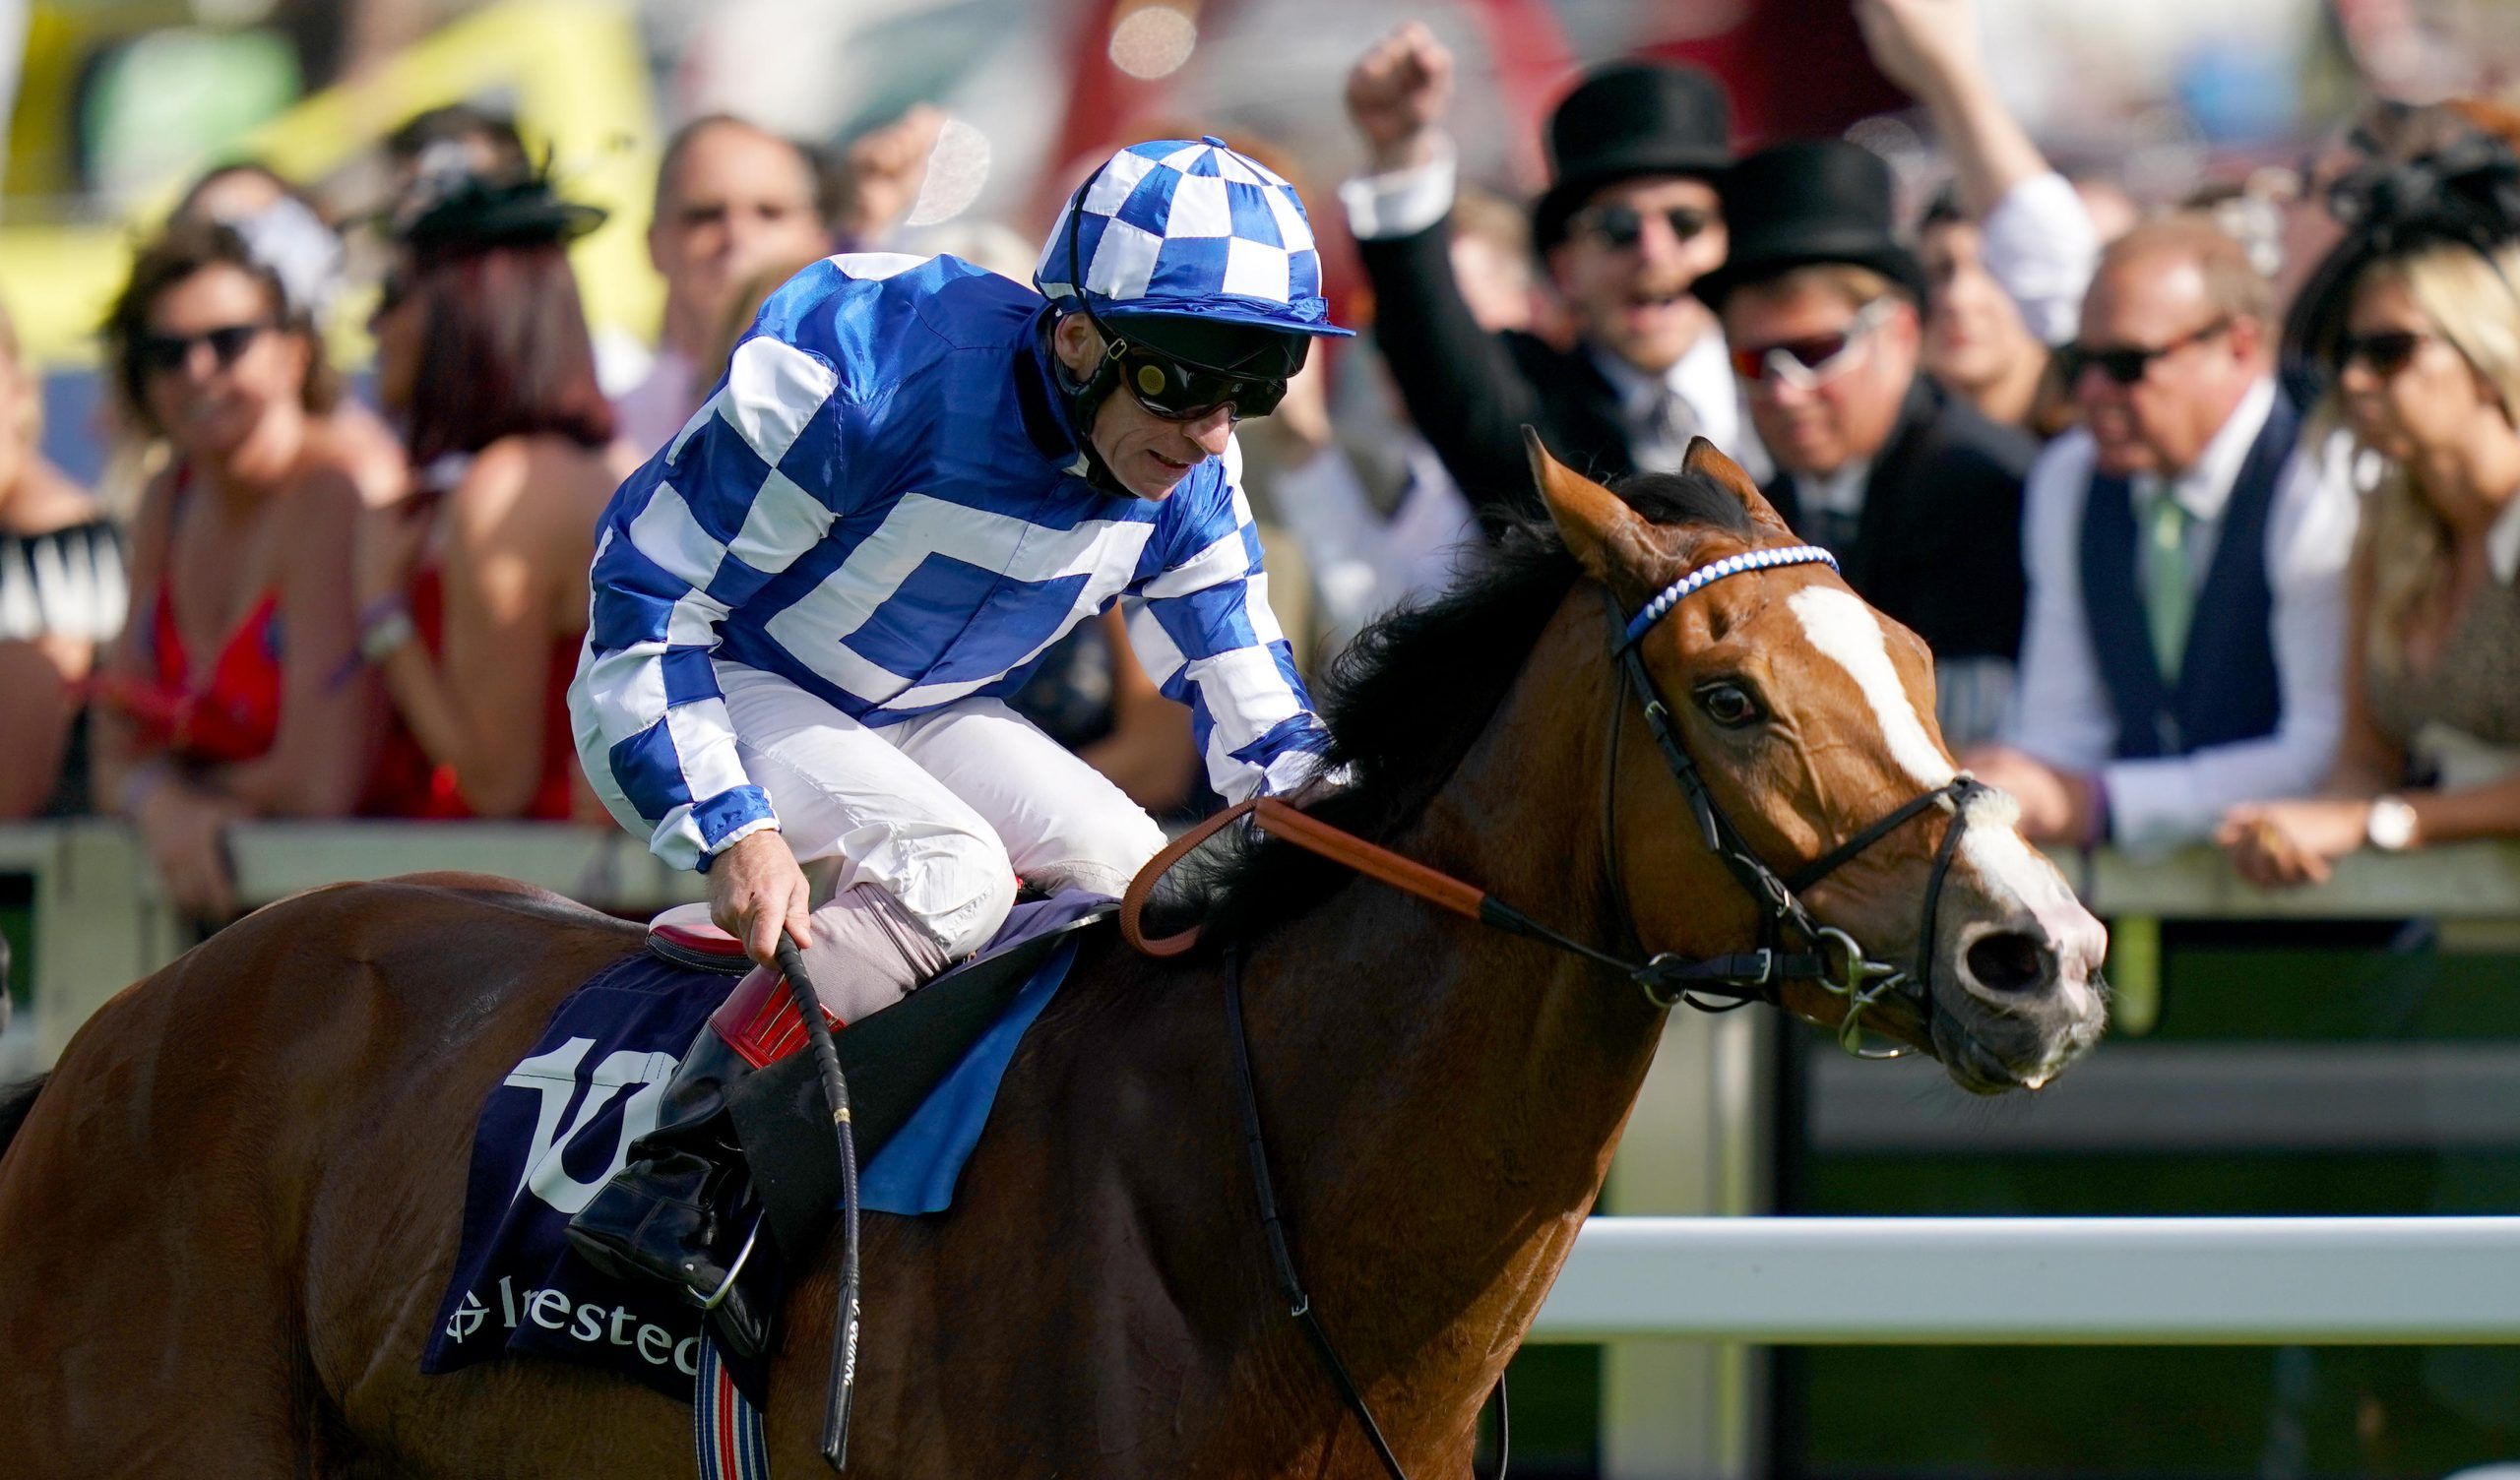 Soto Sizzler ridden by jockey Jimmy Quinn on the way to winning the Investec Out Of The Ordinary Handicap during Derby Day of the 2019 Investec Derby Festival at Epsom Racecourse, Epsom.